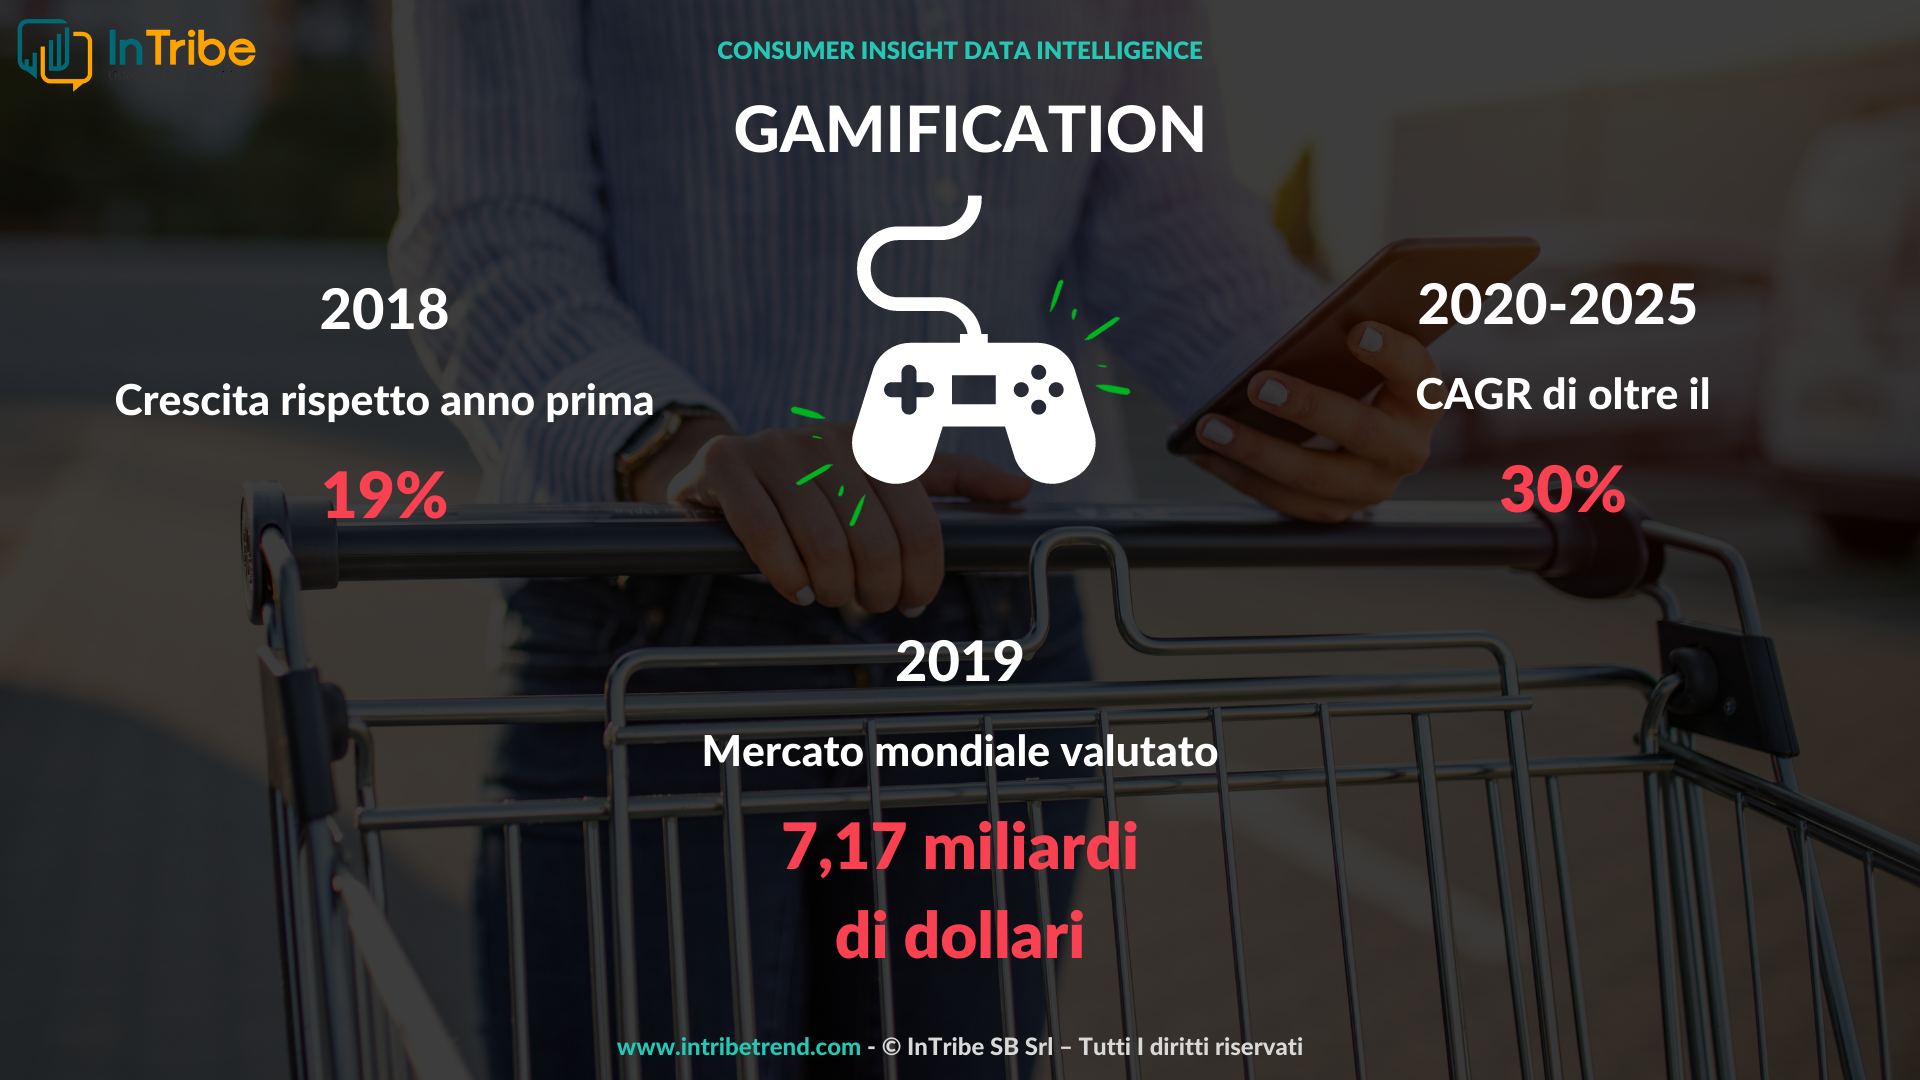 slide-video-gamification-intribe-dati-cagr